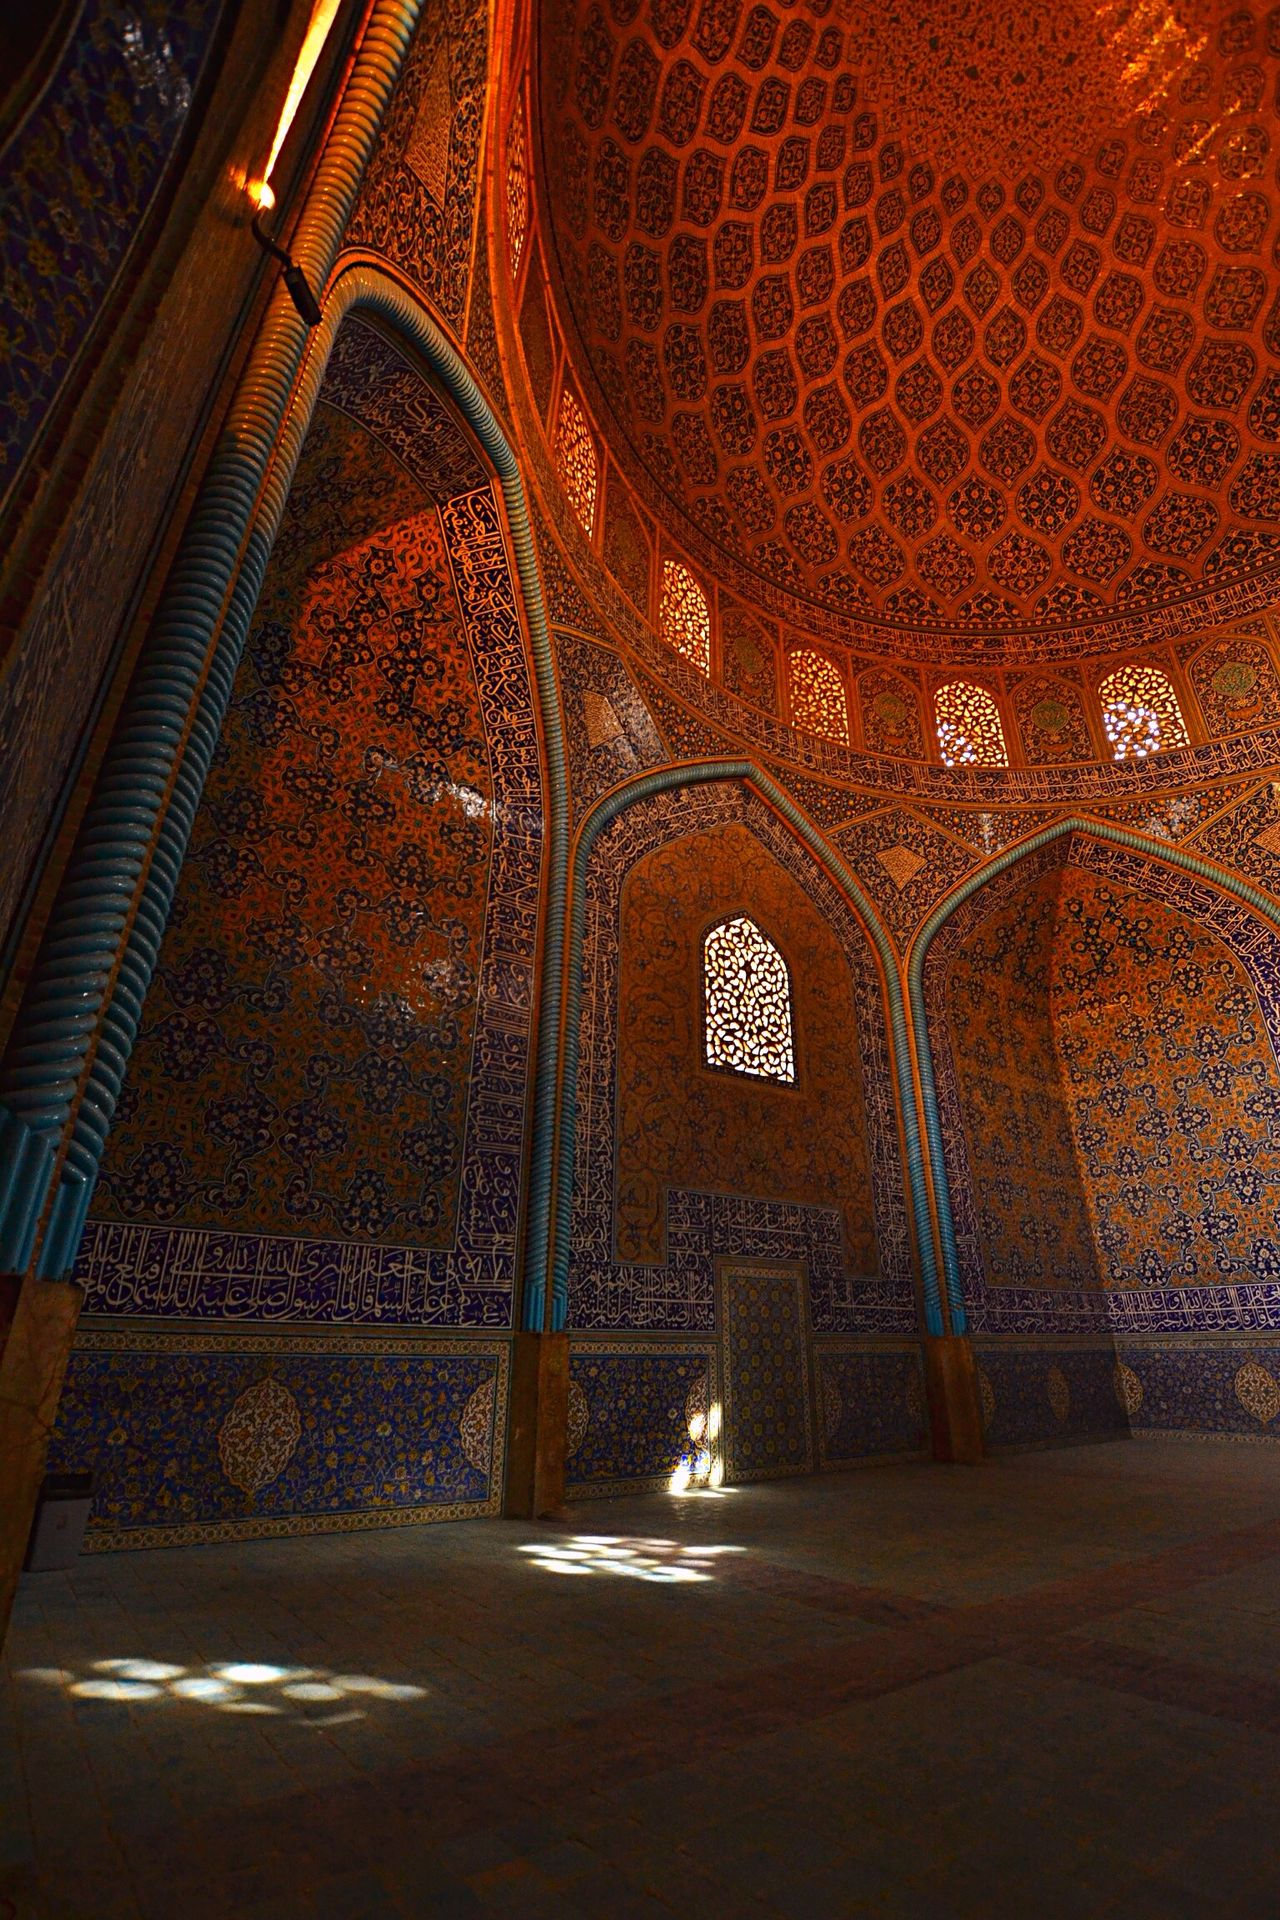 Breathtaking .... Esfahan is the one of the most beautiful city in the world. | The mosque of Eram| Esfahan EyeEm Best Shots Travel Photography Persia The Traveler - 2015 EyeEm Awards Masjed  EyeEm Gallery Breathtaking Architecture Amazing Architecture